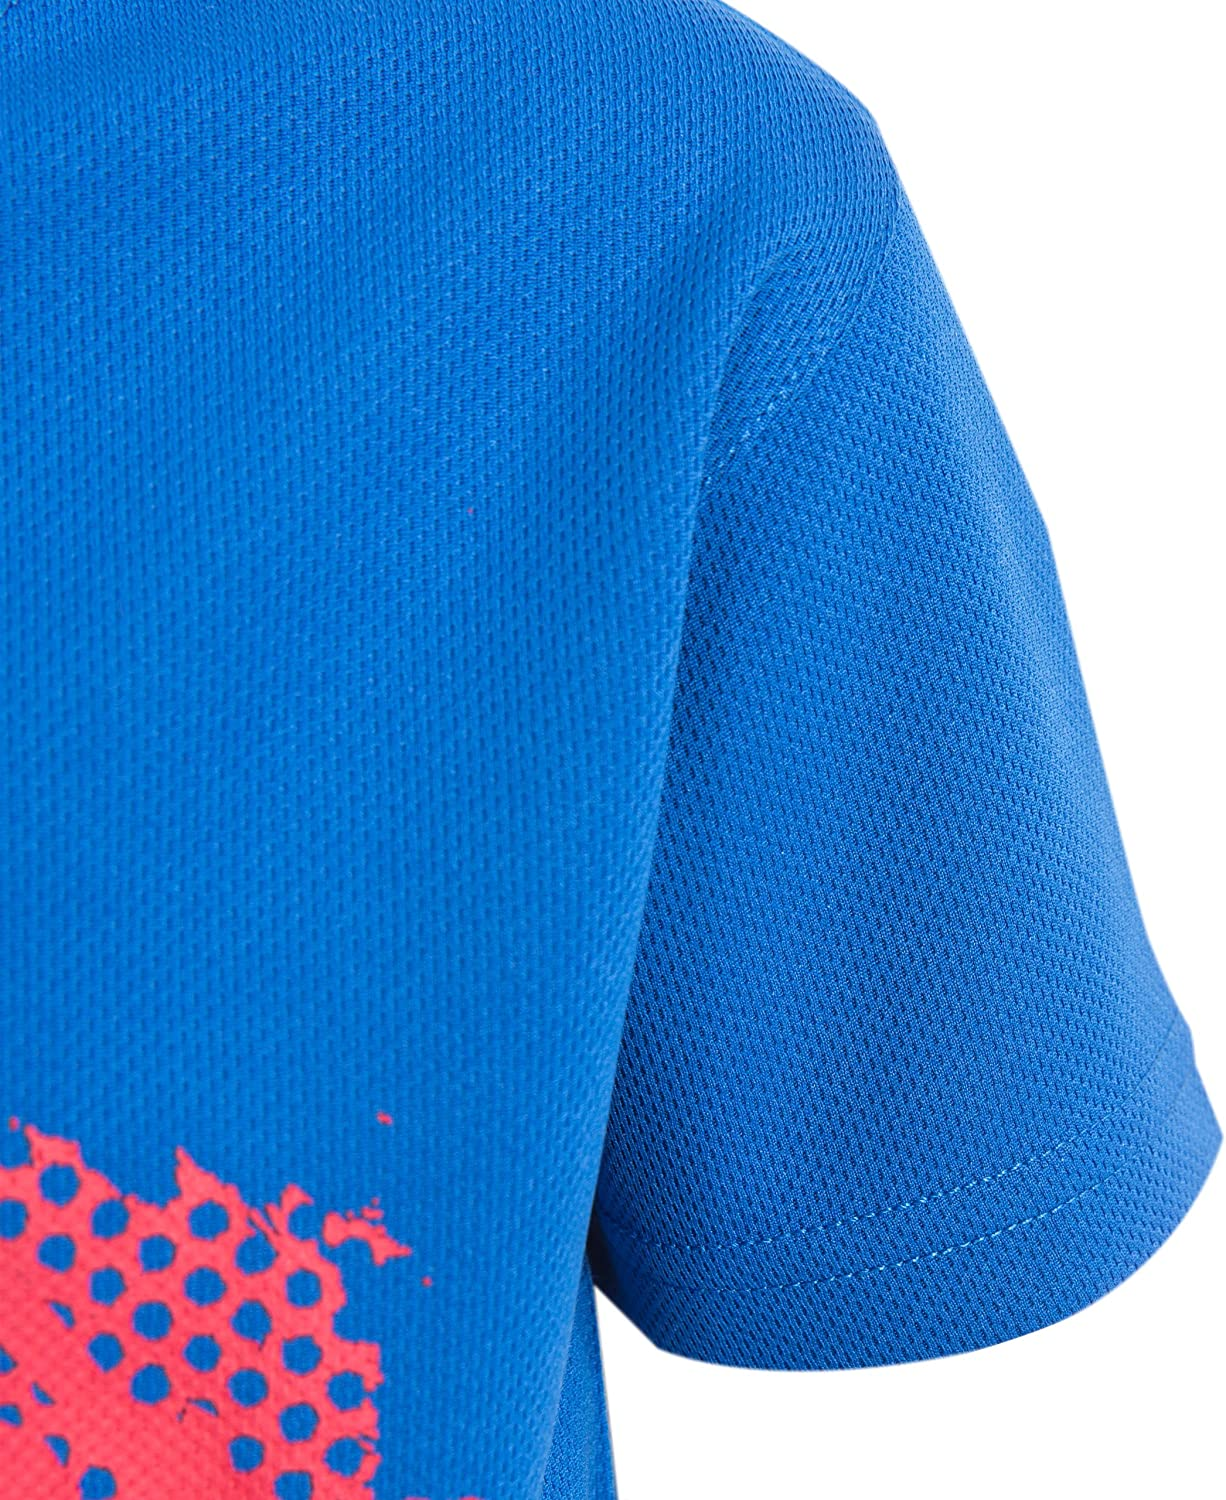 Trespass Kids Declare T-Shirt with Chest Print for Children Boys//Toddlers Ages 2-12 for Outdoor//Fun//Sports//Leisure